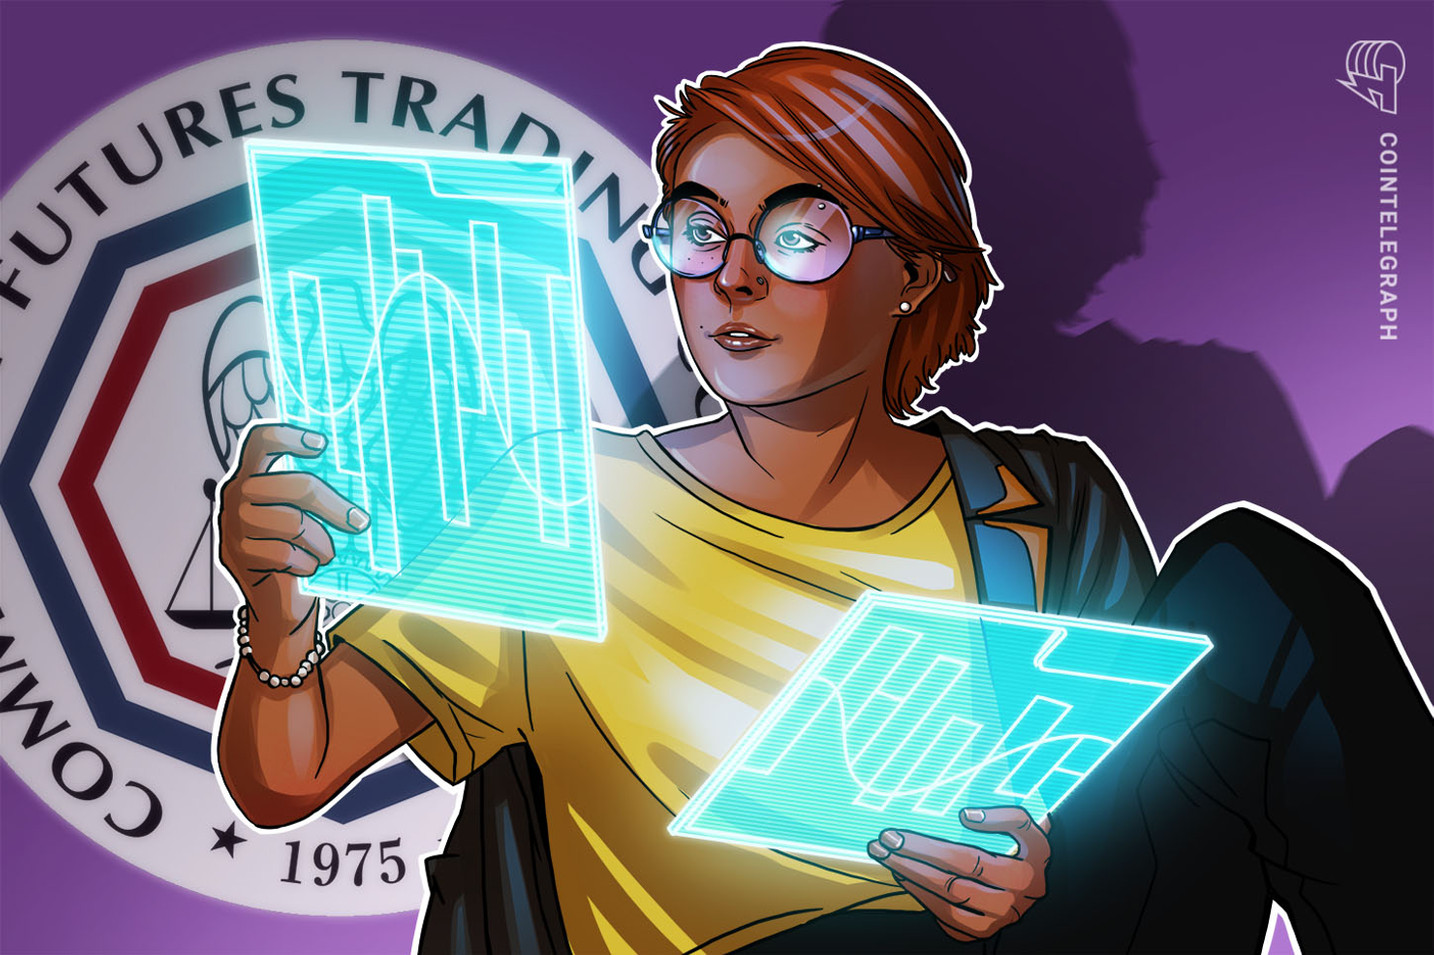 CFTC charges crypto futures trading platform for failure to register in the US